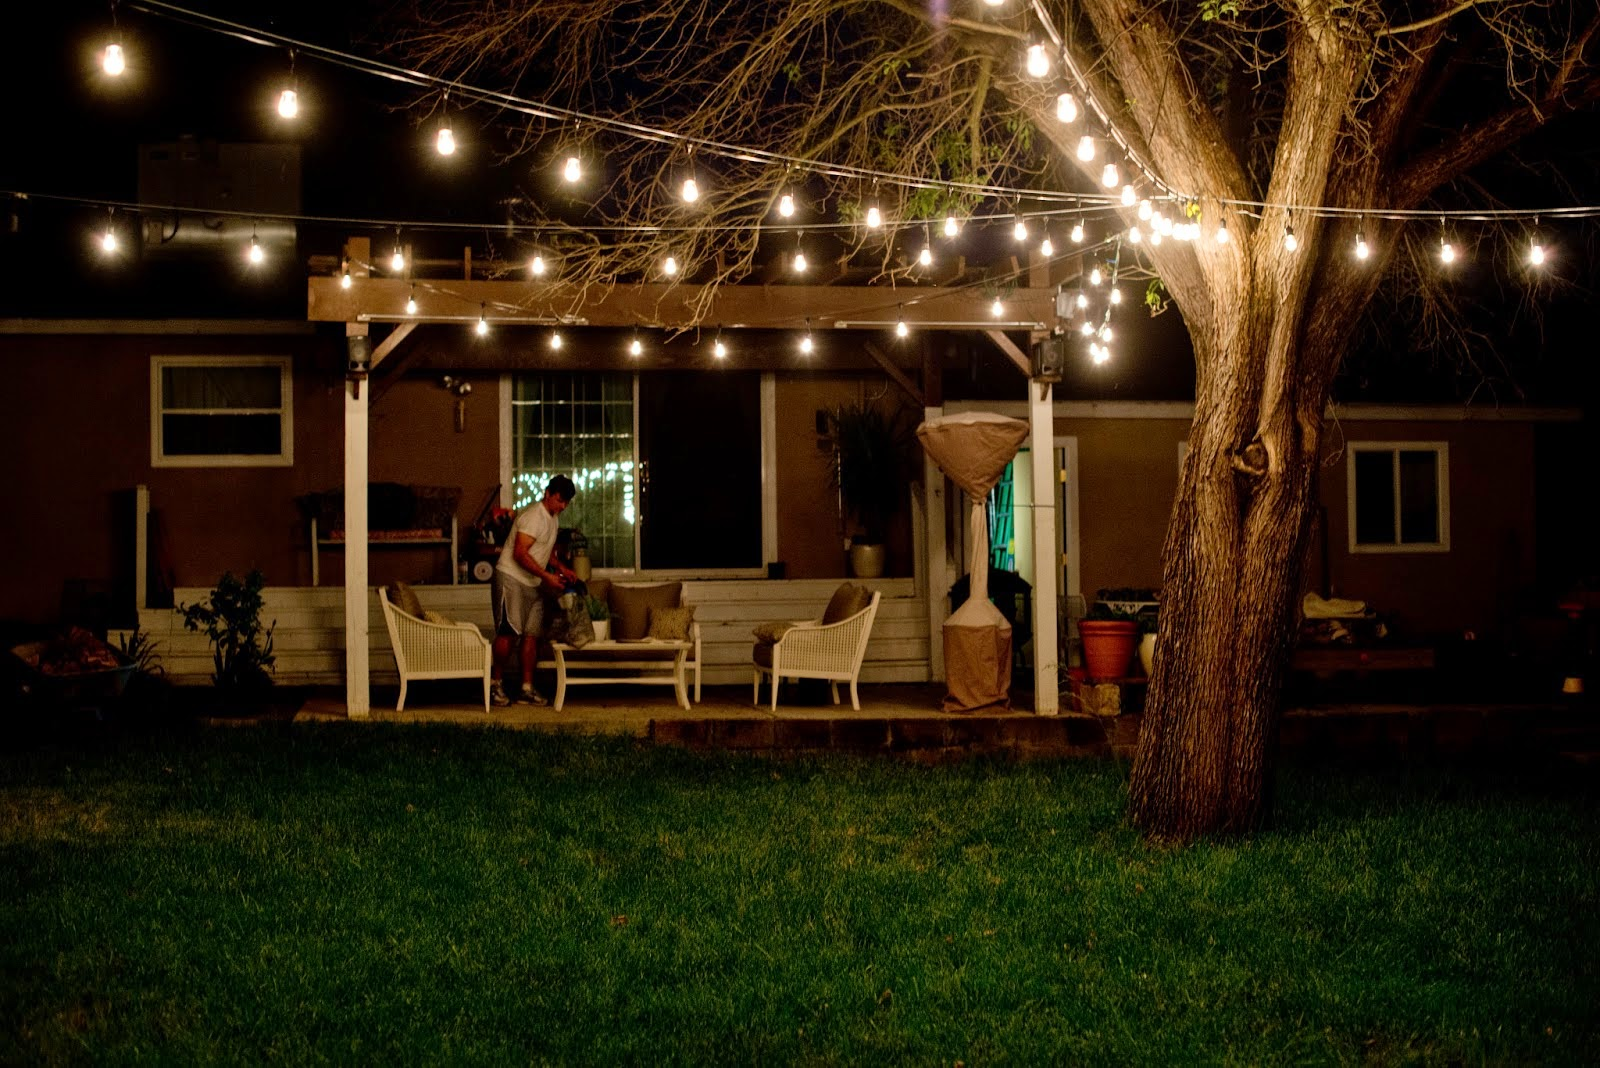 Lightshare Light Up the Outdoor Patio or Porch With Decorative Lights for Spring